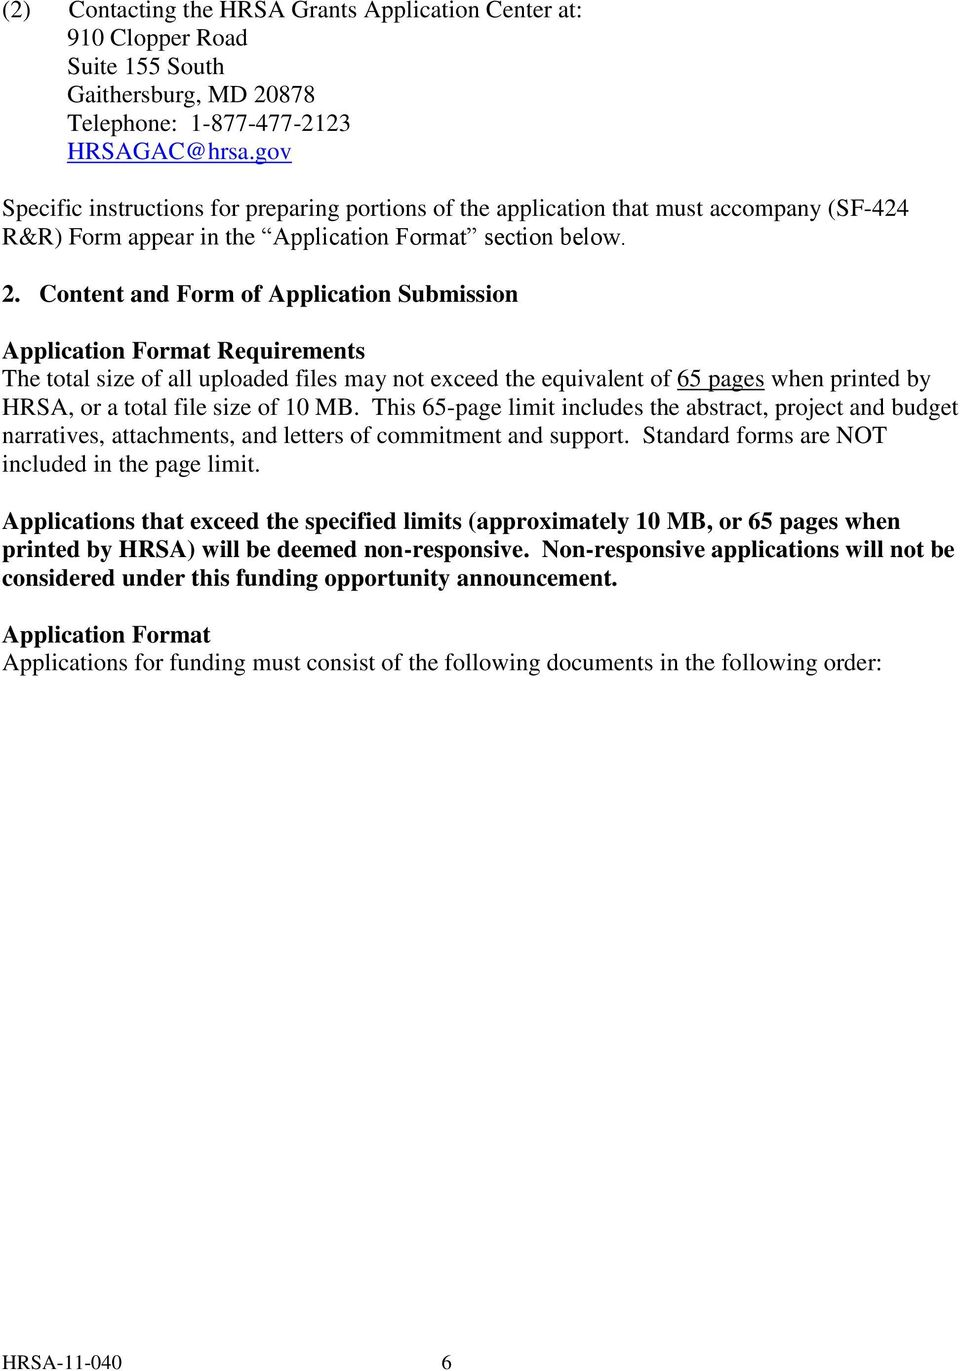 Content and Form of Application Submission Application Format Requirements The total size of all uploaded files may not exceed the equivalent of 65 pages when printed by HRSA, or a total file size of